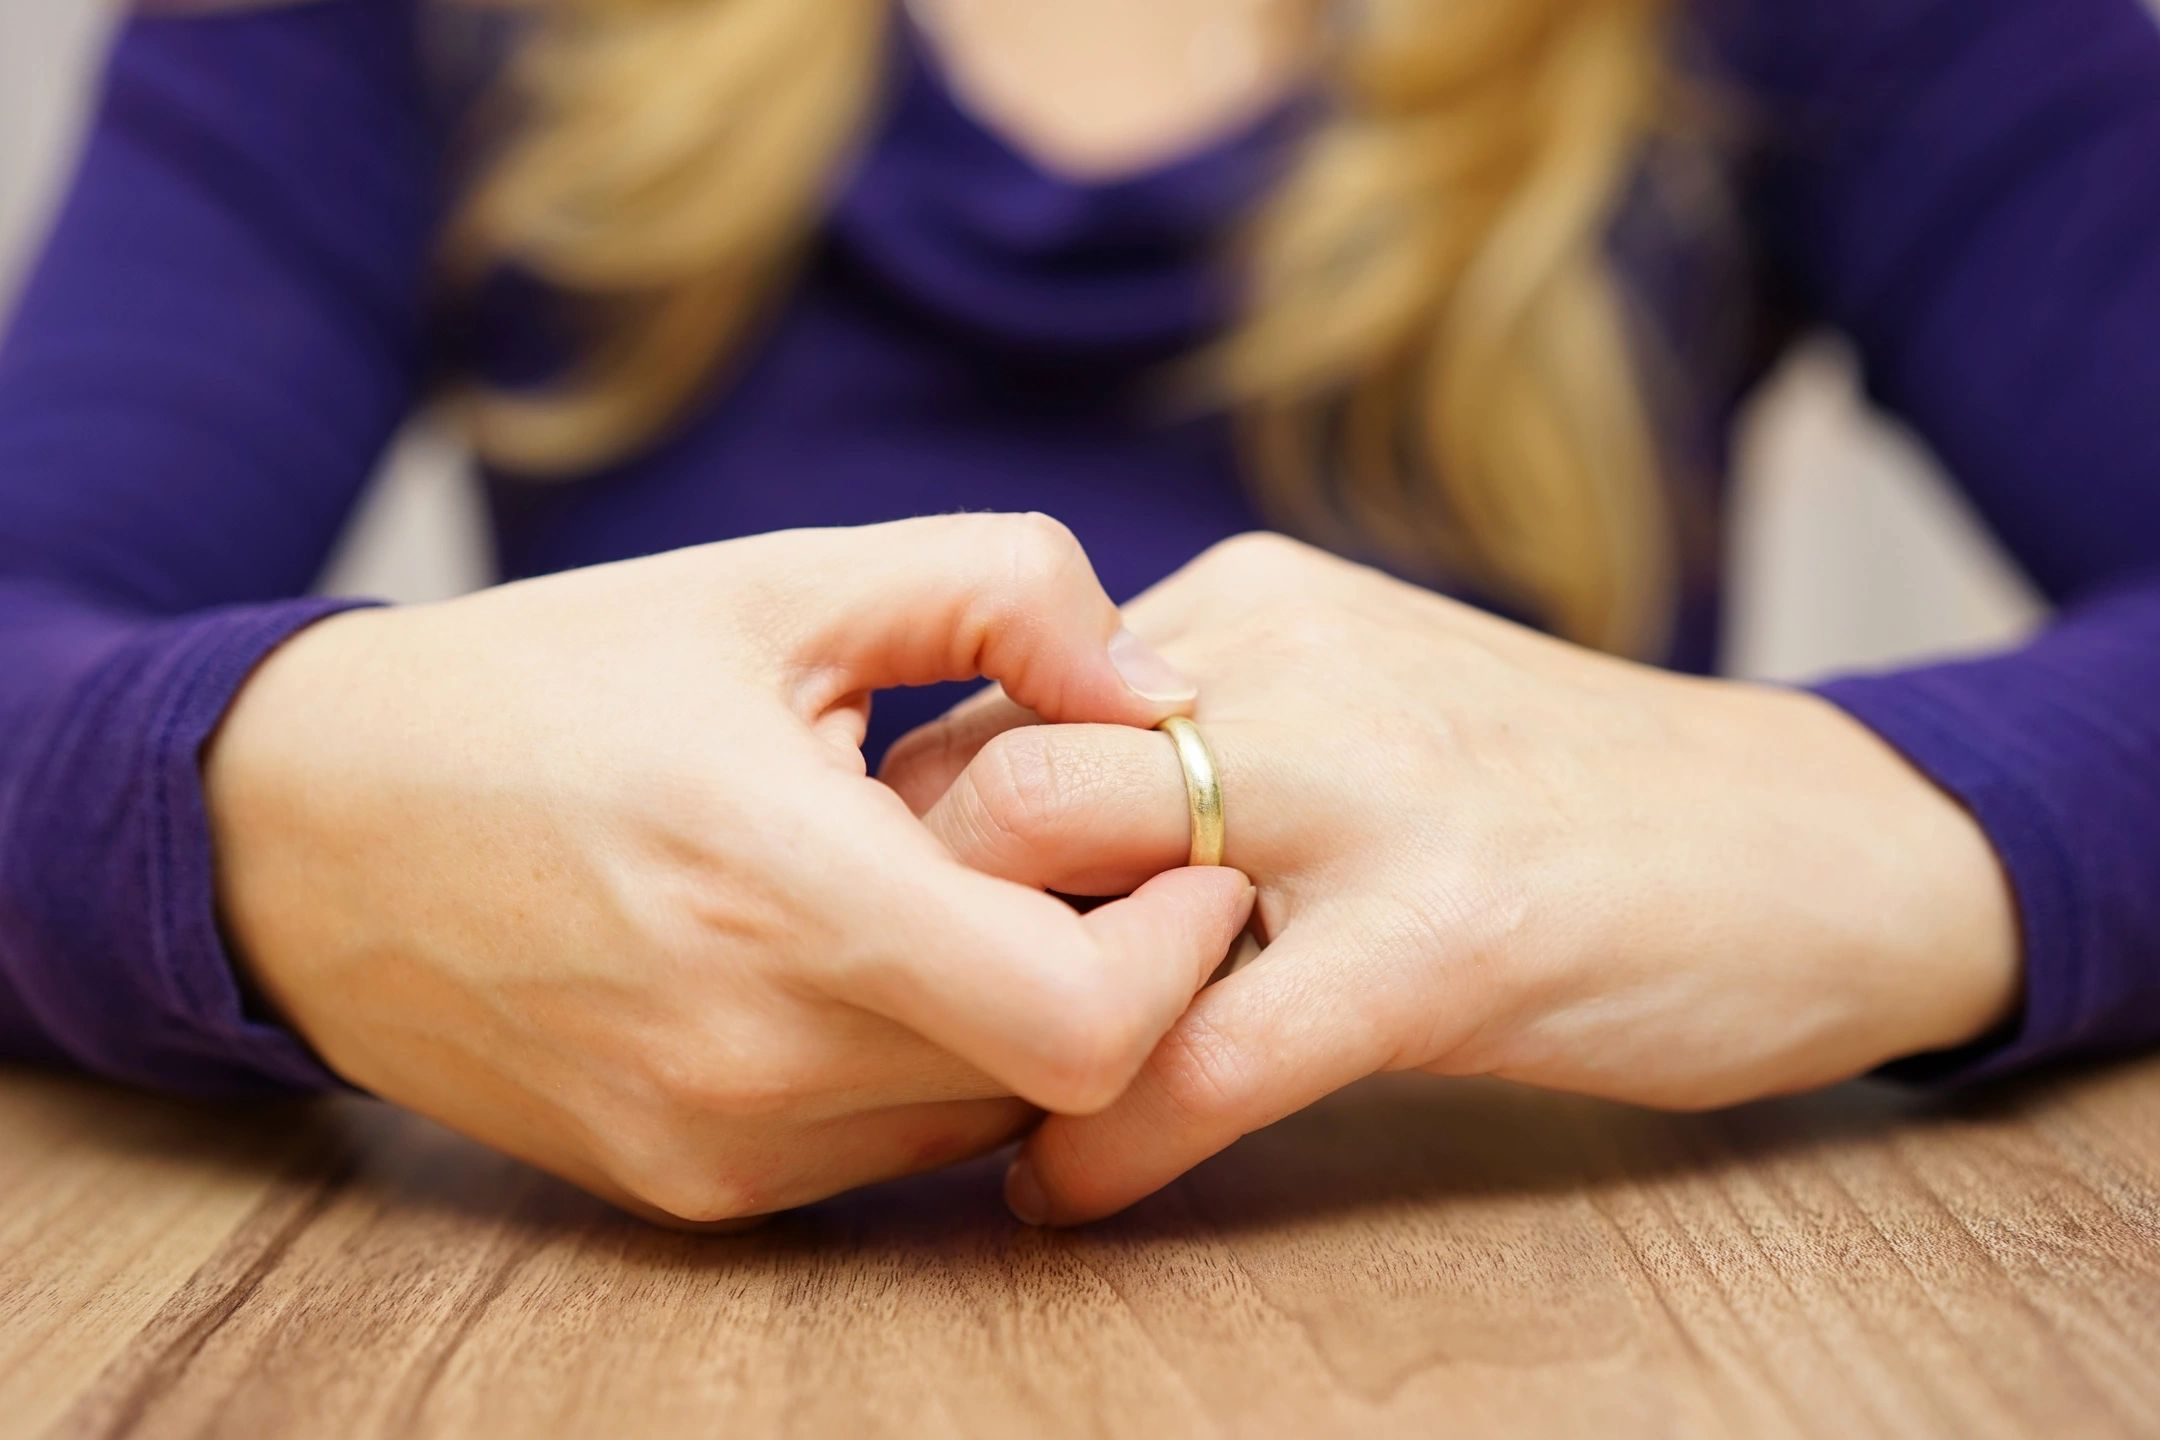 Woman ready to remove her wedding ring